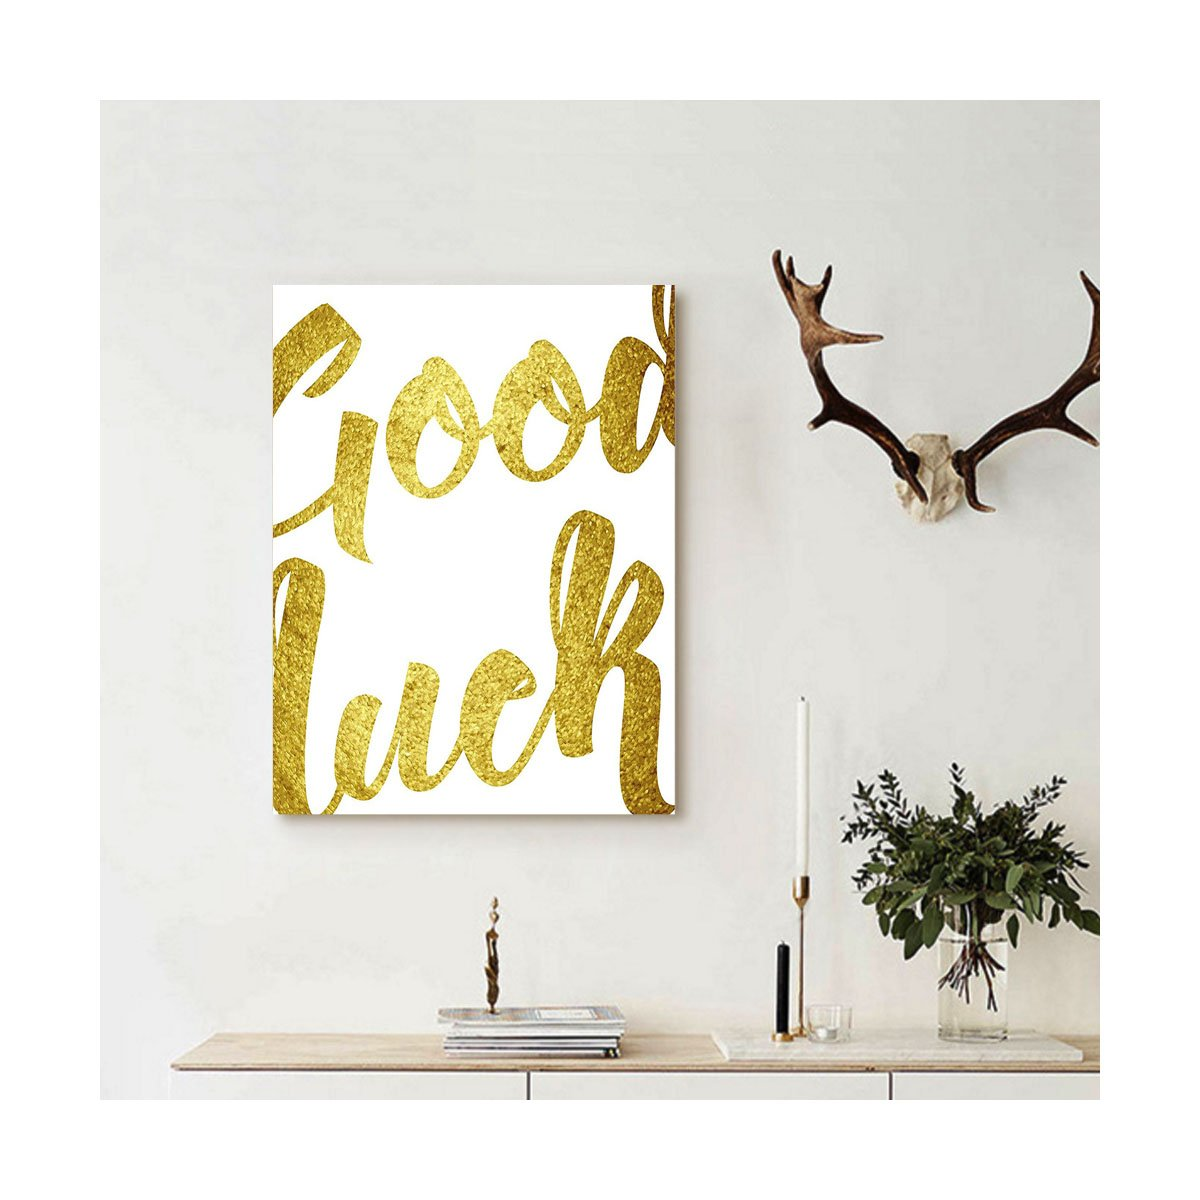 Liguo88 Custom canvas Going Away Party Decorations Good Luck Wish Note Hand Written Lettering Greeting Card Concept Wall Hanging for Gold